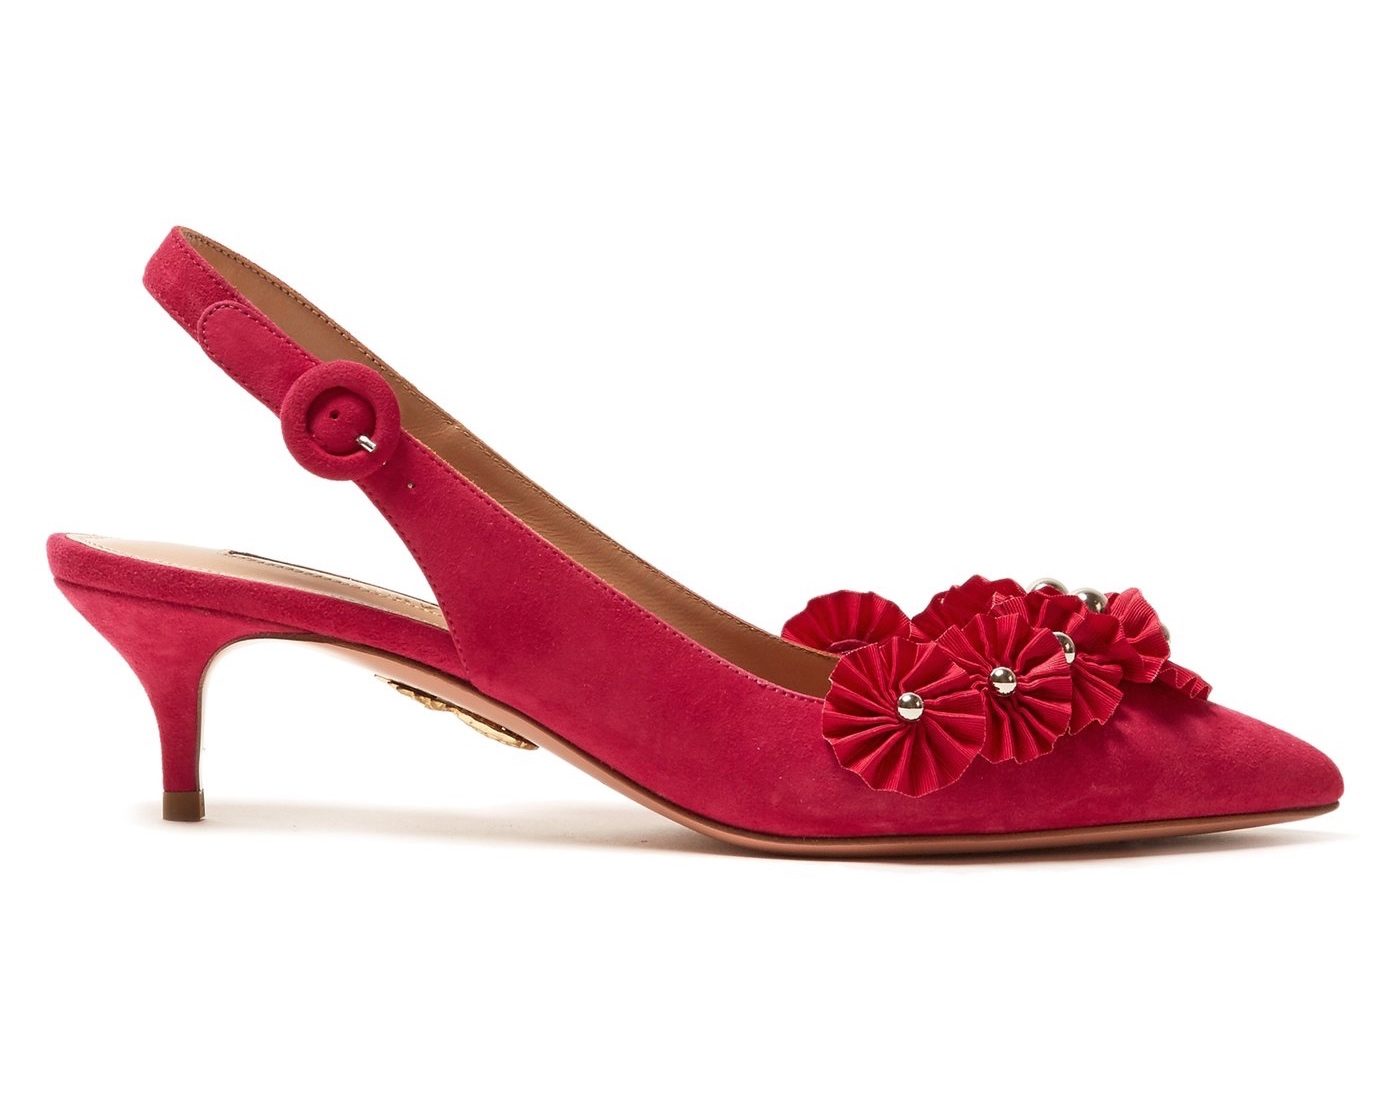 Aquazurra Exotic Embellished Suede Pumps